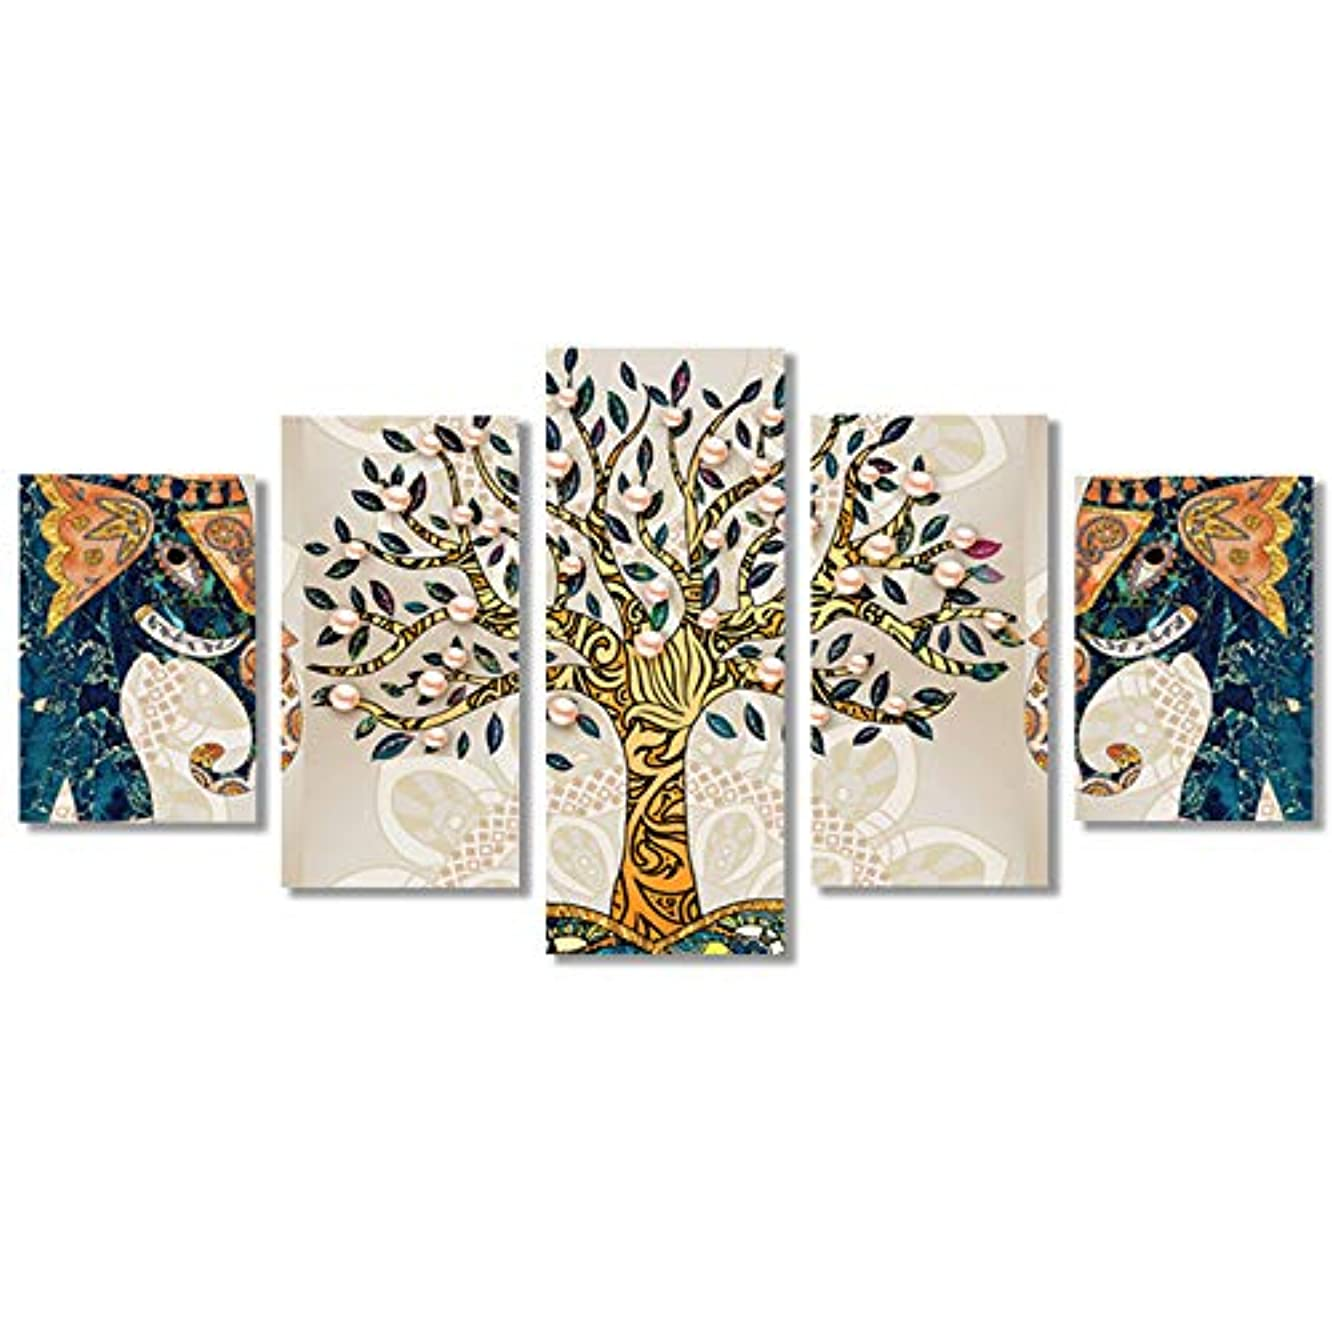 DIY 5D Diamond Painting Kit Tree for Adults, MaxSweetun Full Drill Diamond Embroidery Cross Stitch Picture Arts Craft for Home Wall, 5 Panels of Splicing Painting, 95x45cm